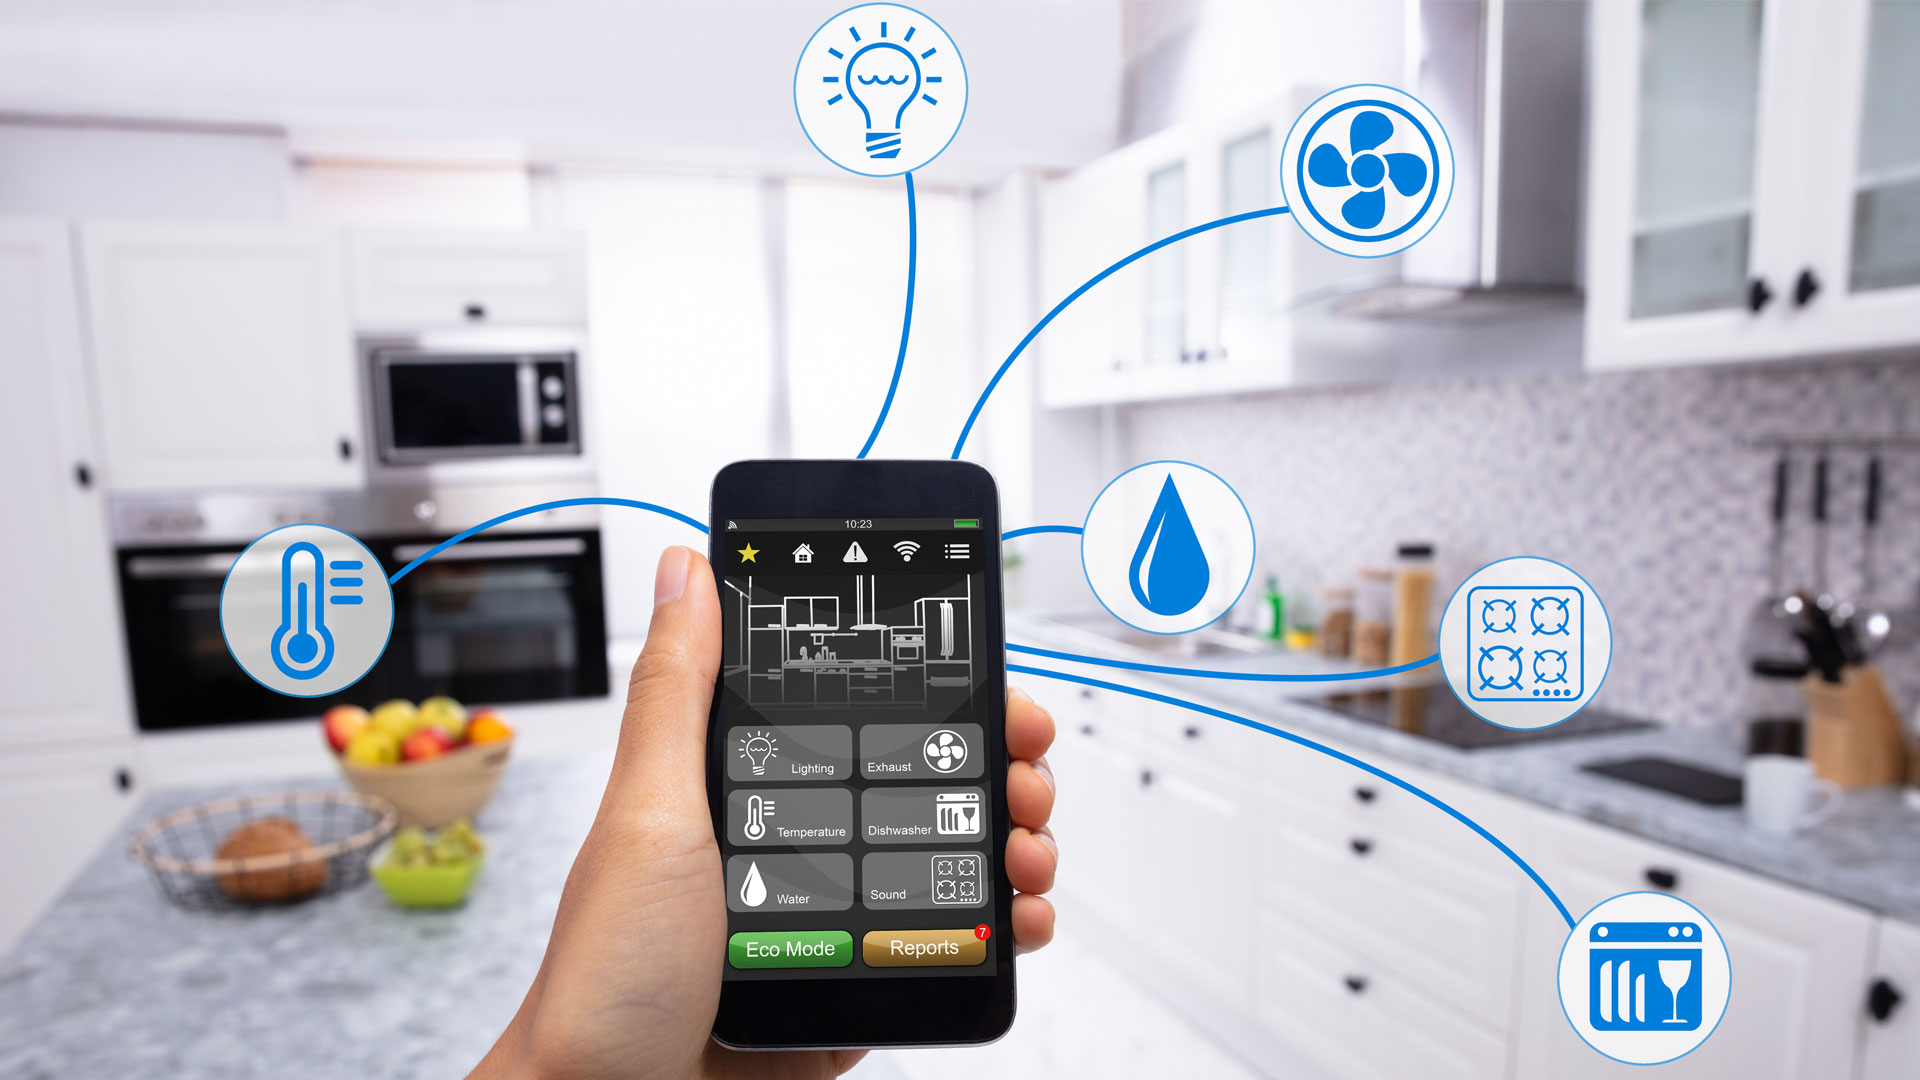 Smart home image courtesy of iStock